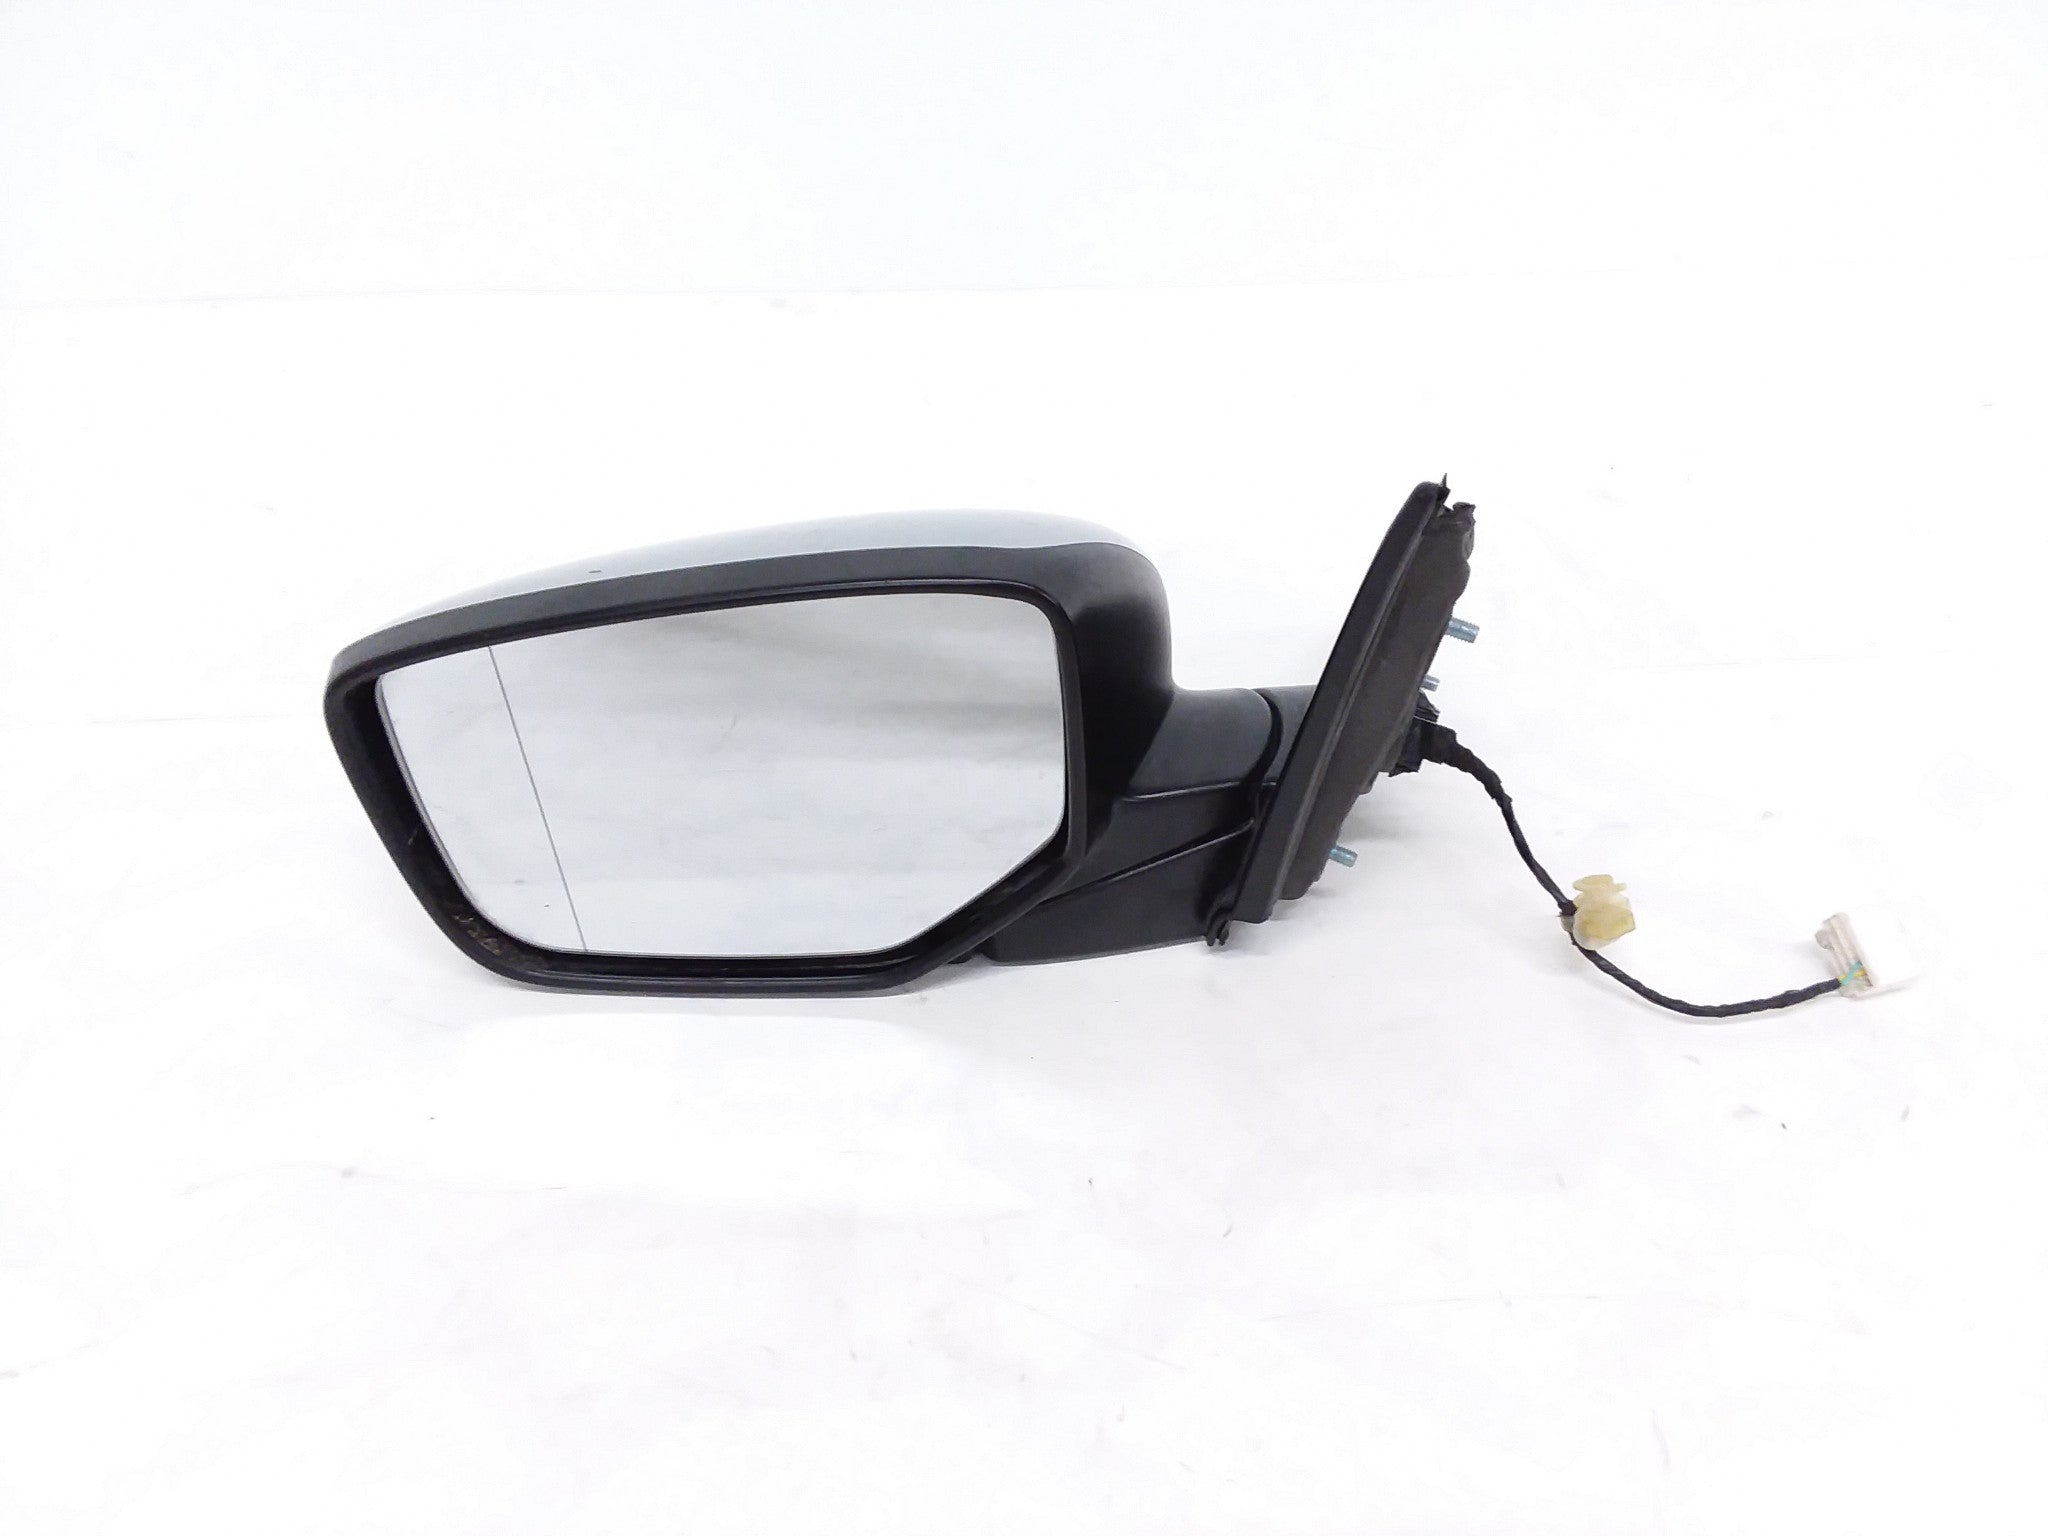 HONDA ACCORD DRIVER LEFT SIDE MIRROR 2013 2014 2015 76250-T2F-A110-M6 OEM